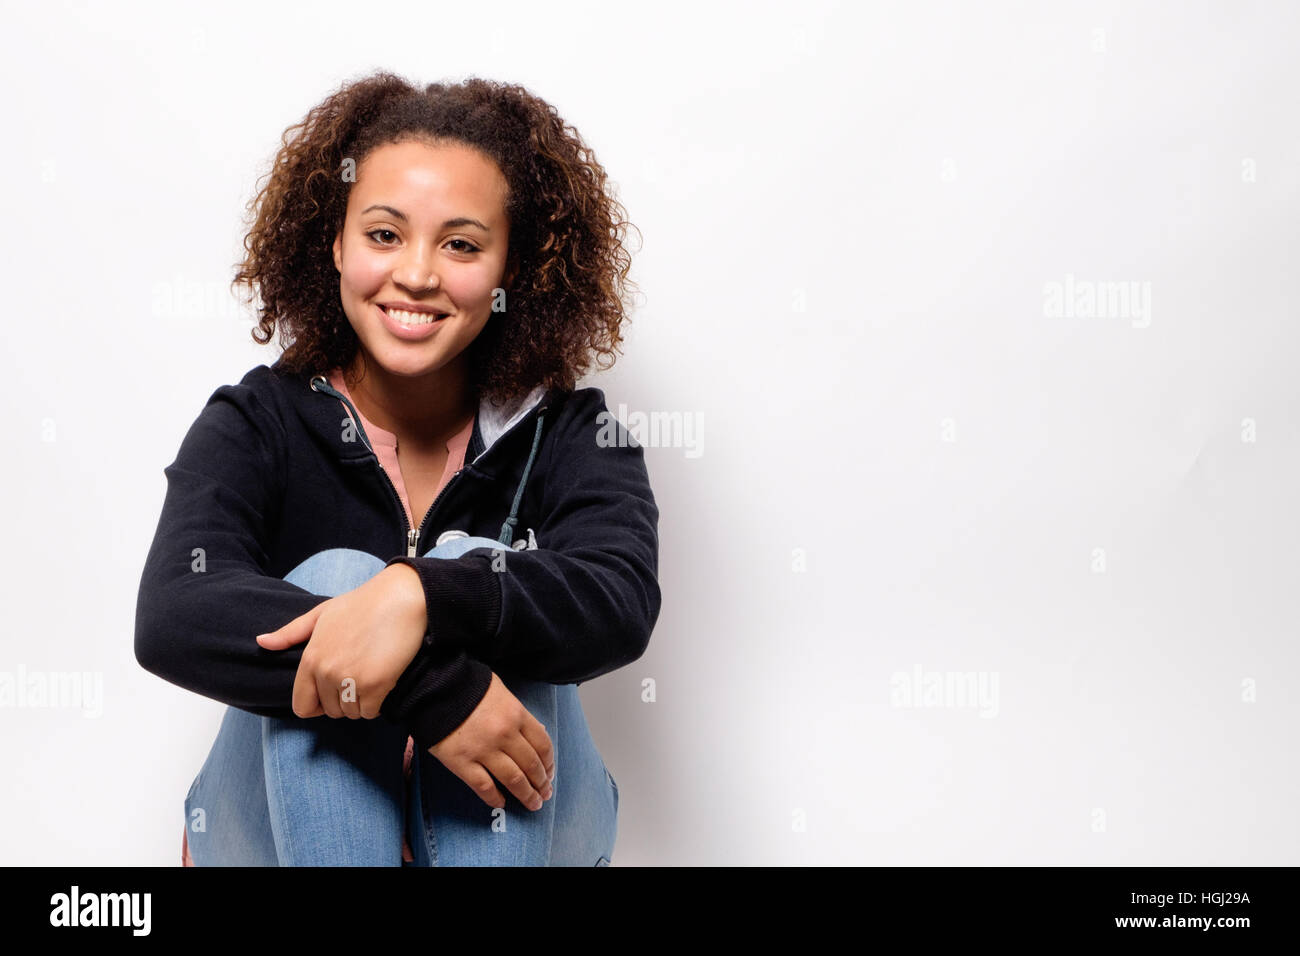 Happy afro-american woman isolated on background - Stock Image